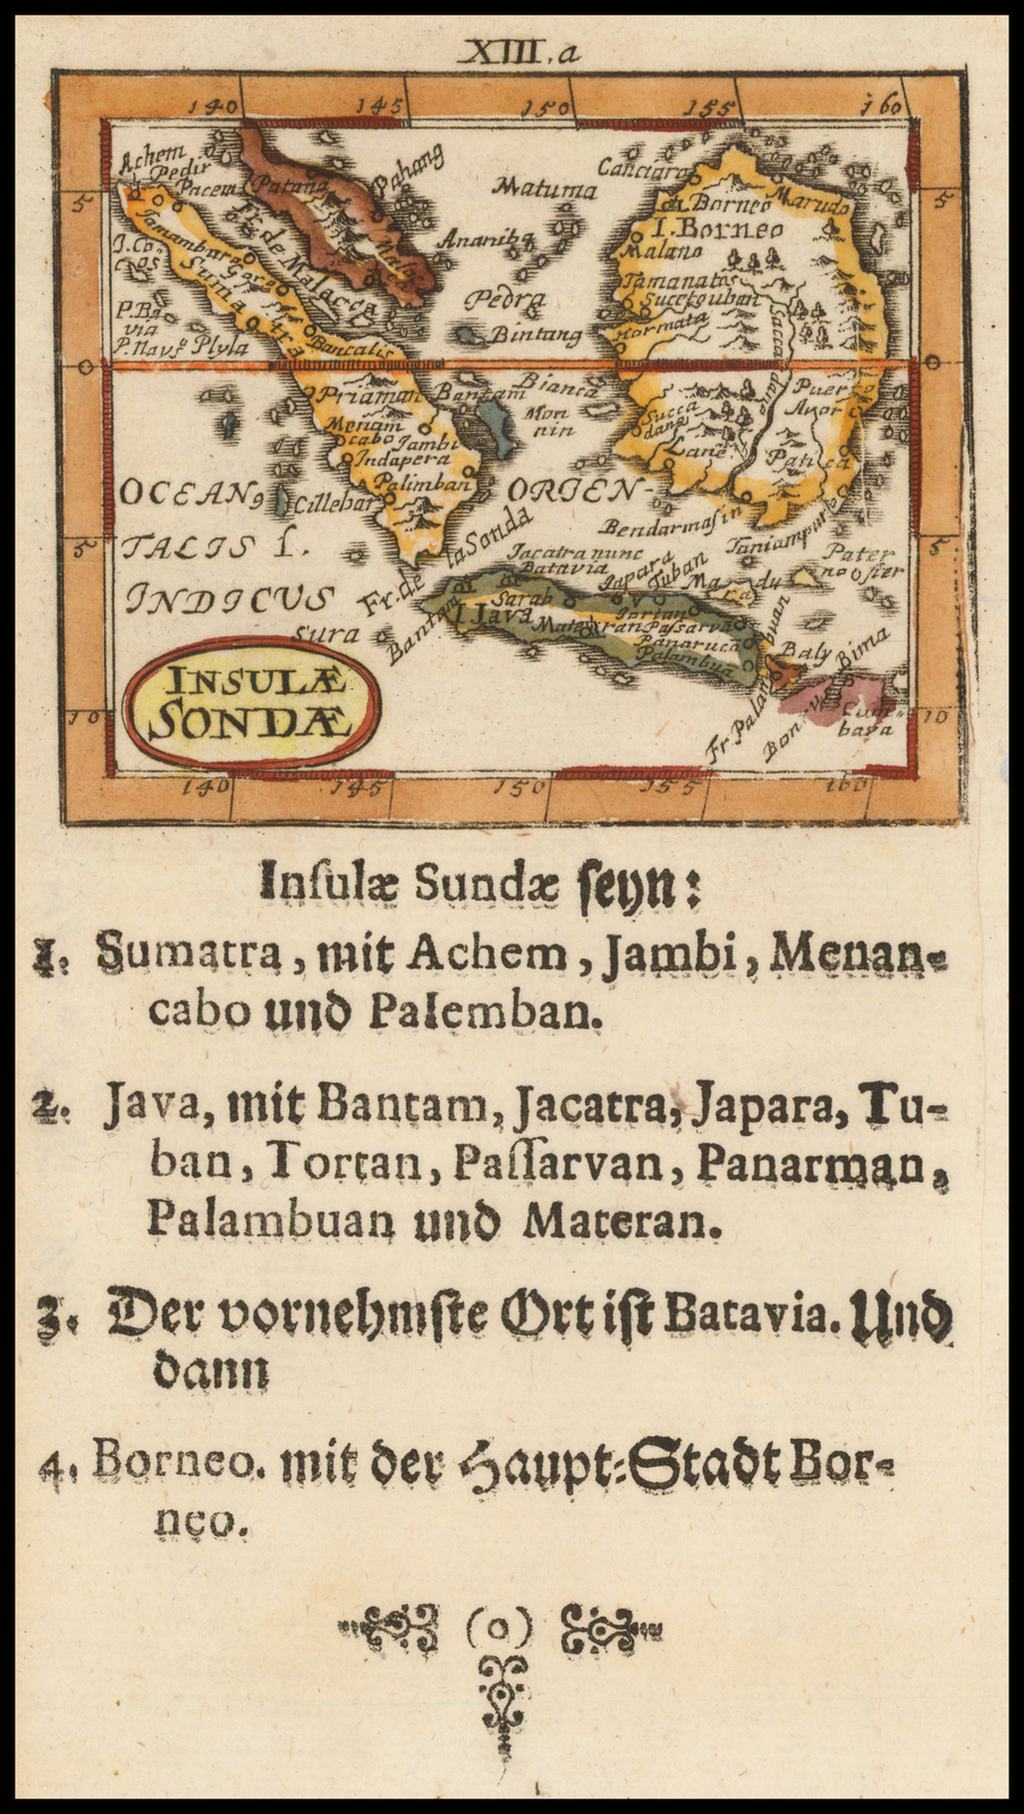 Insulae Sonde (Straits of Malacca, Java and Borneo) By Johann Ulrich Muller